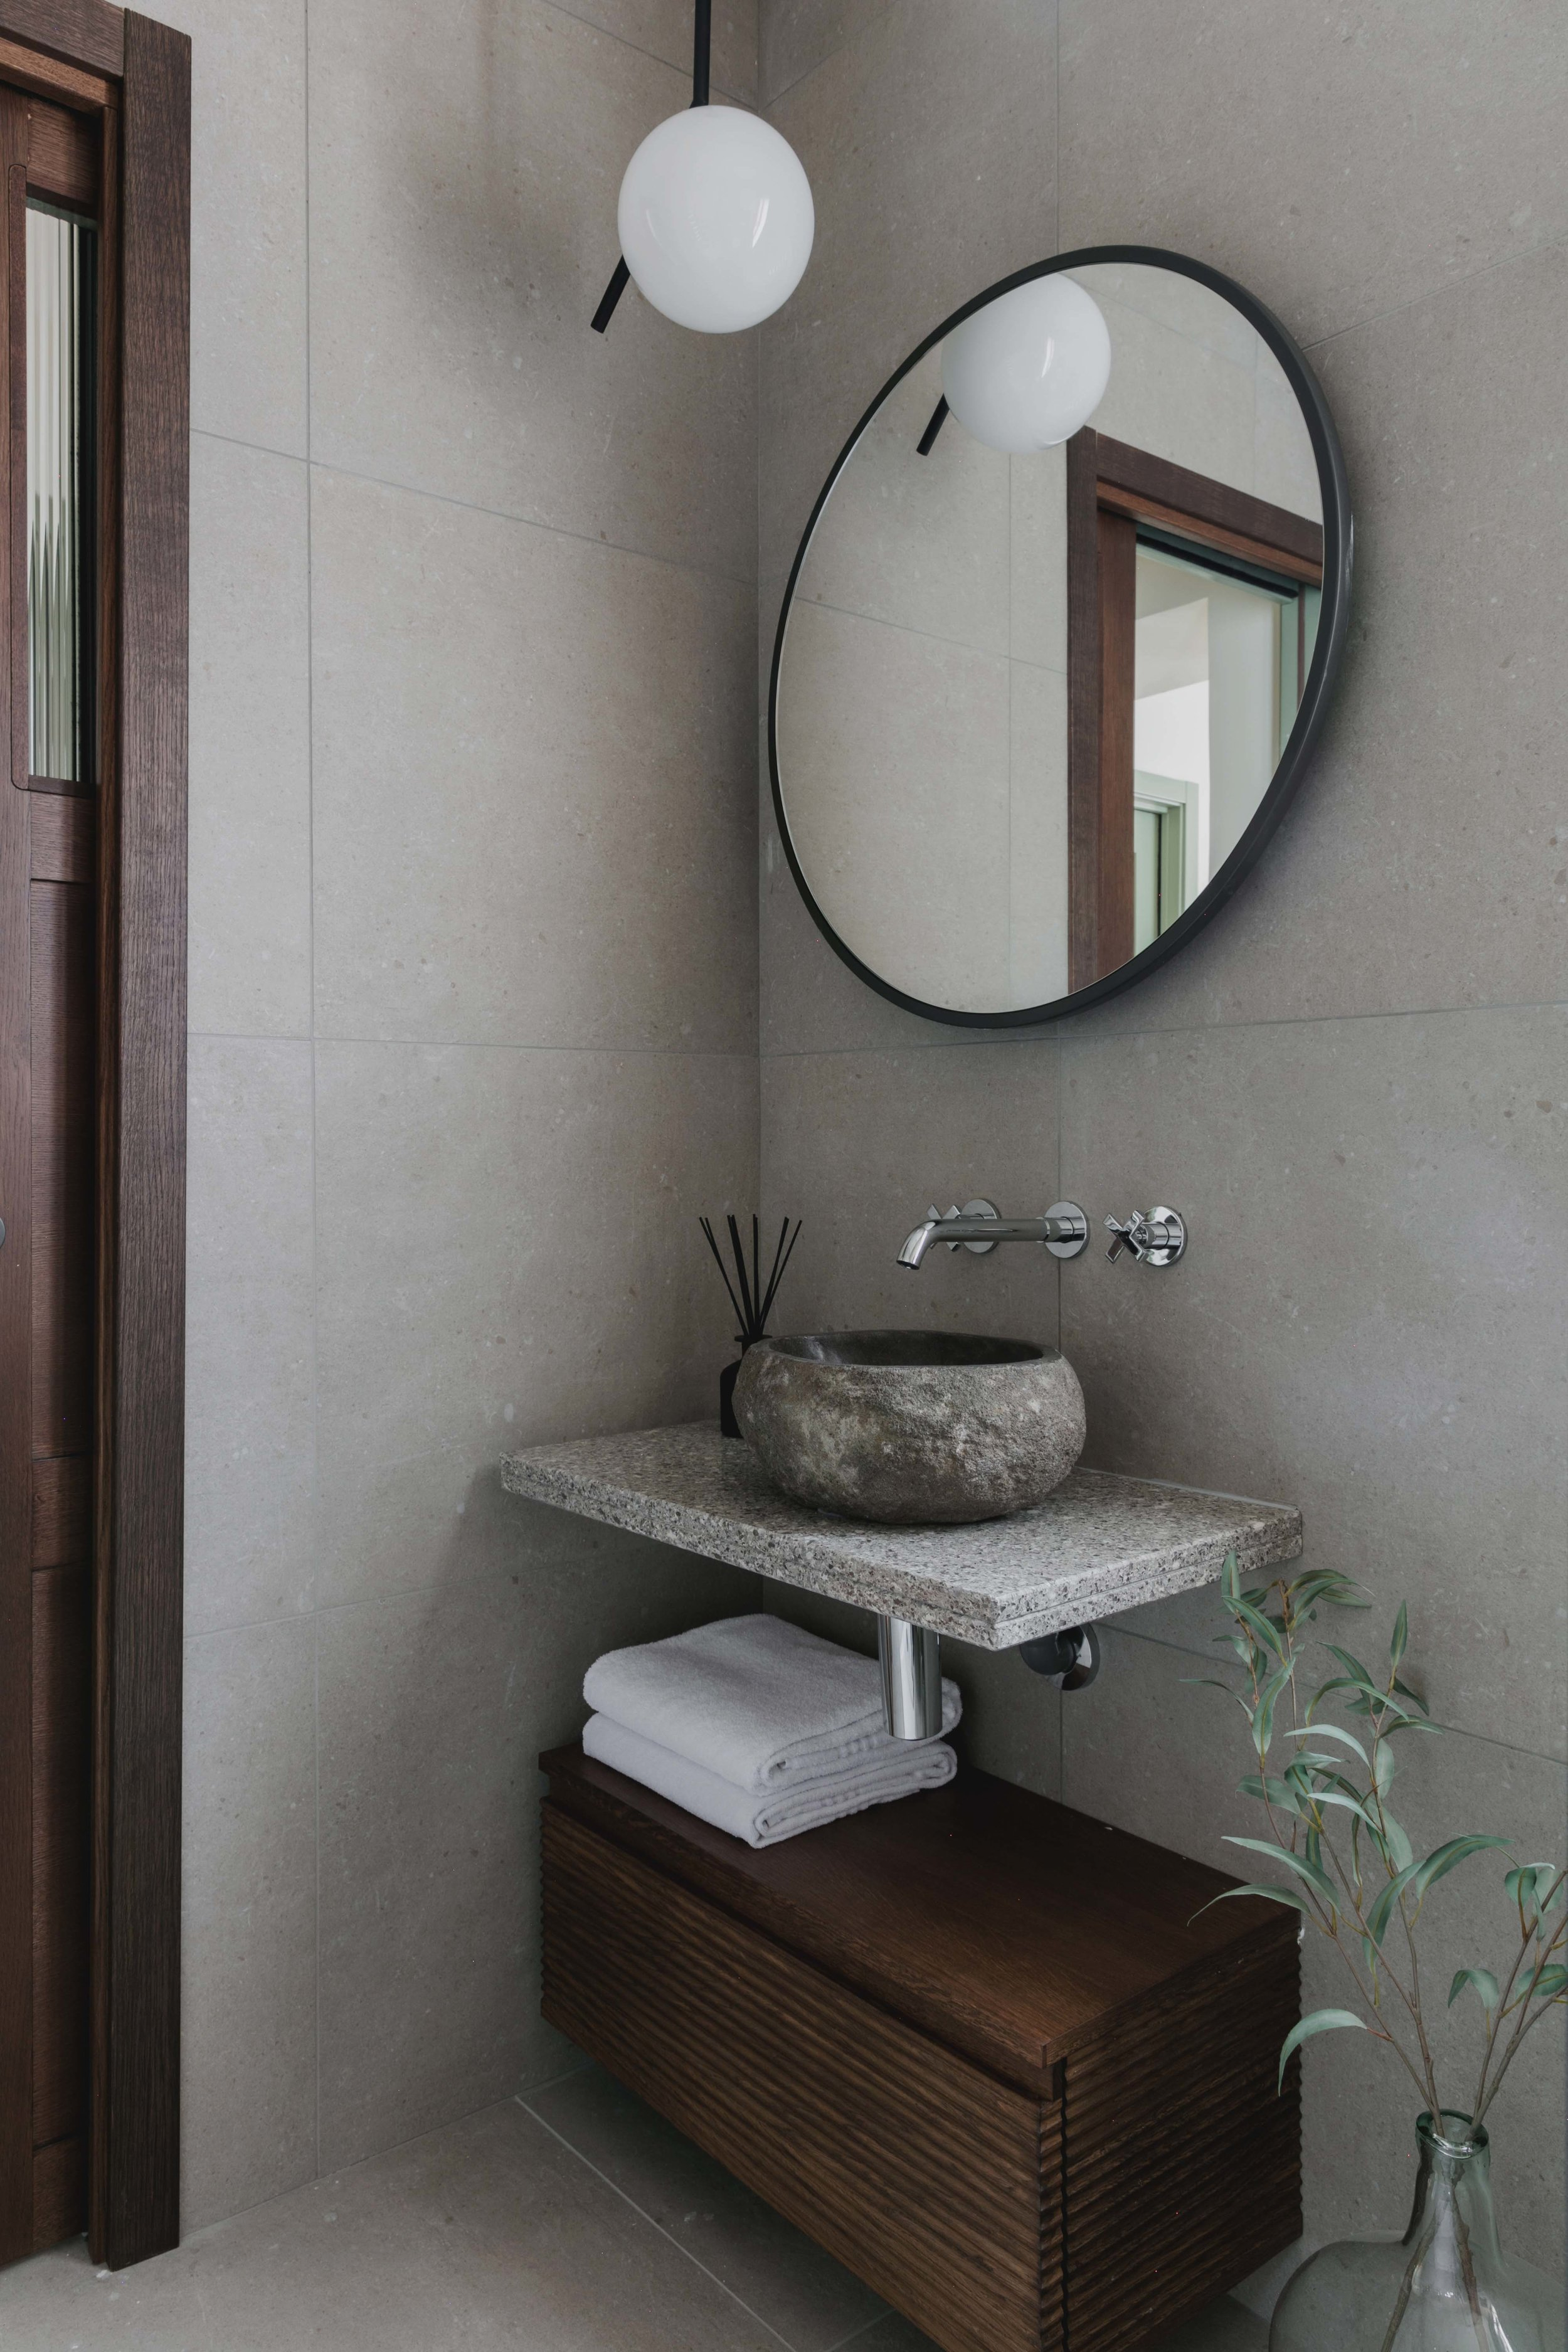 calm-bathroom-spa-design-natural-stone-sink-boxx-creative.jpg